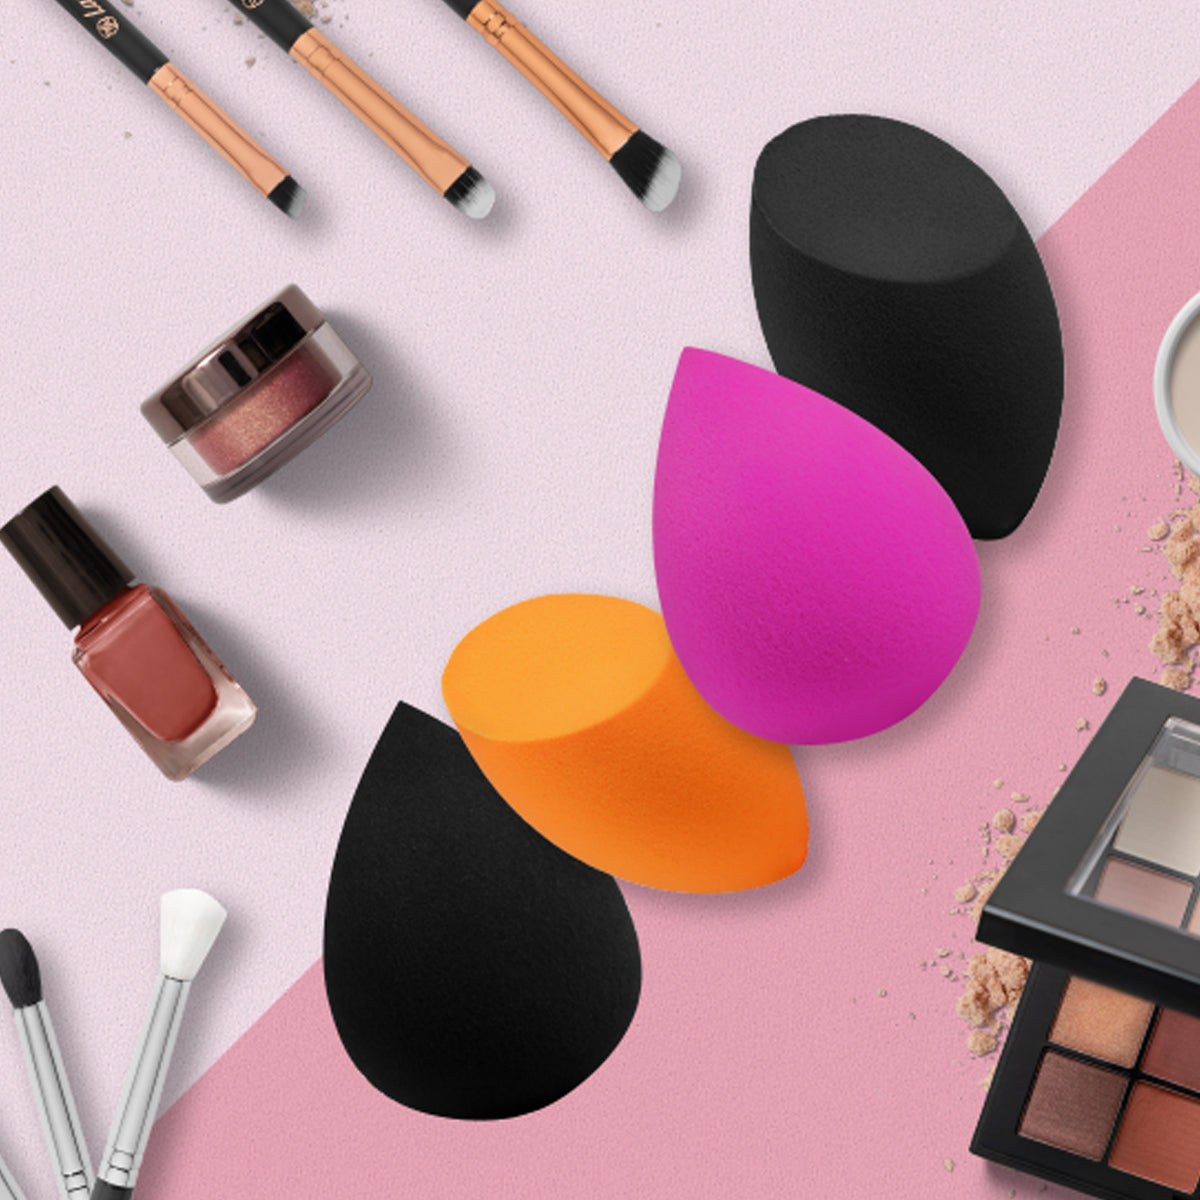 Beauty background image with beauty blenders and cosmetic sets